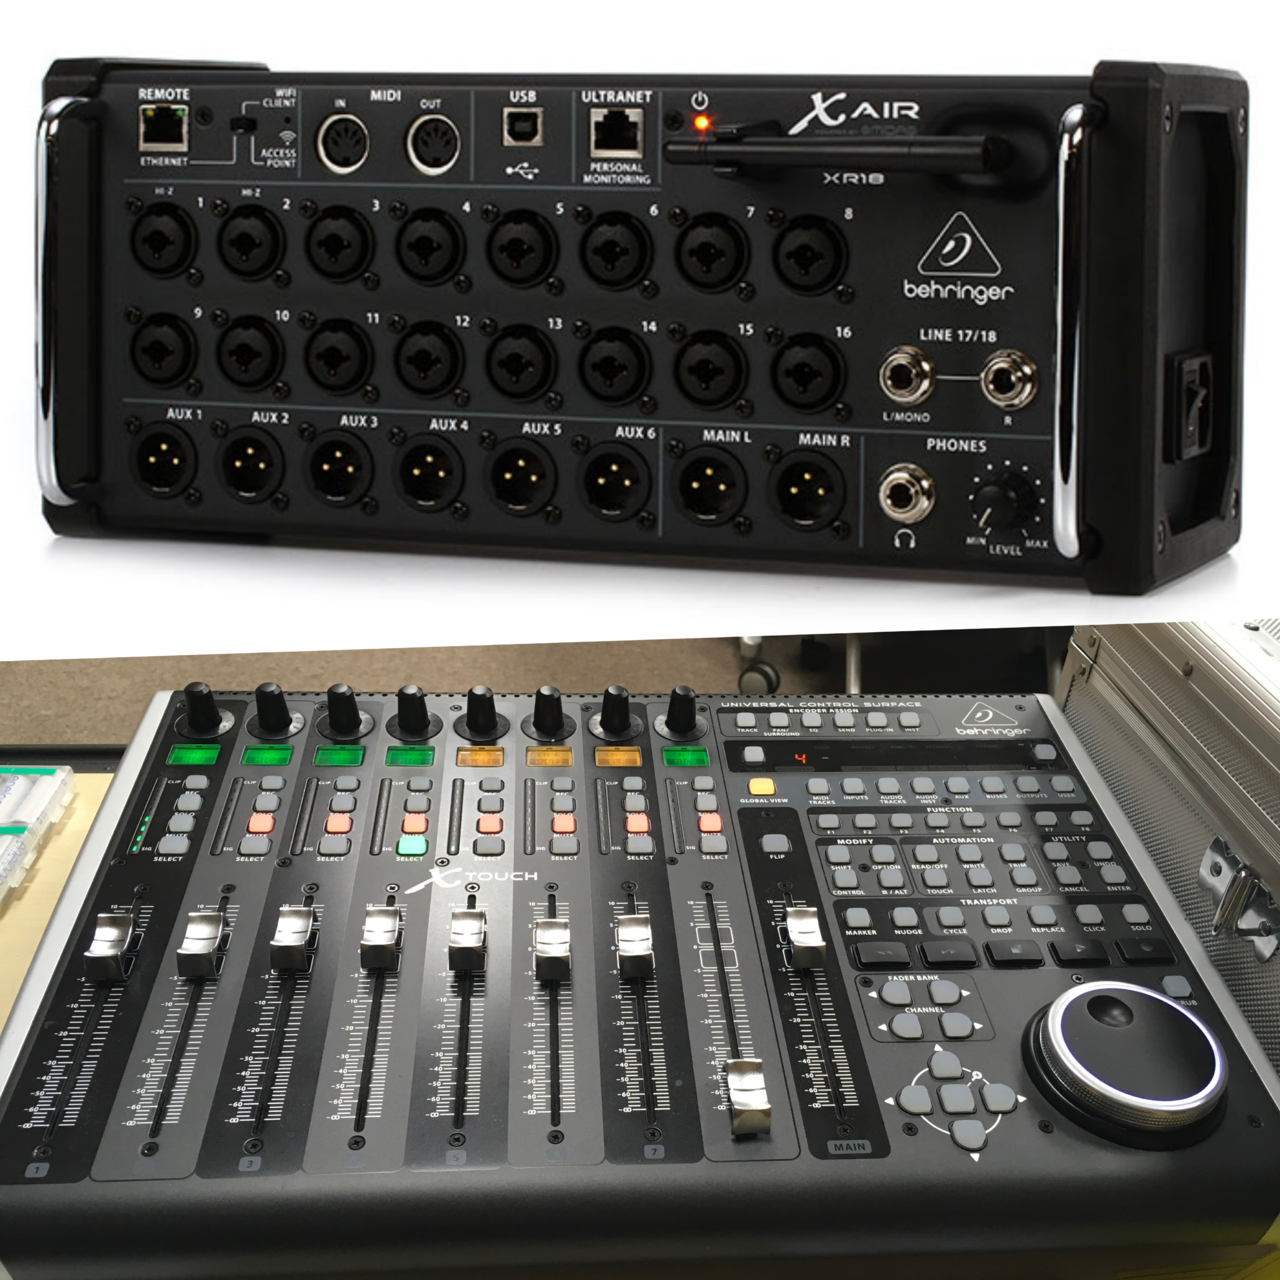 Mixing console - XAIR(18ch) & XTOUCH